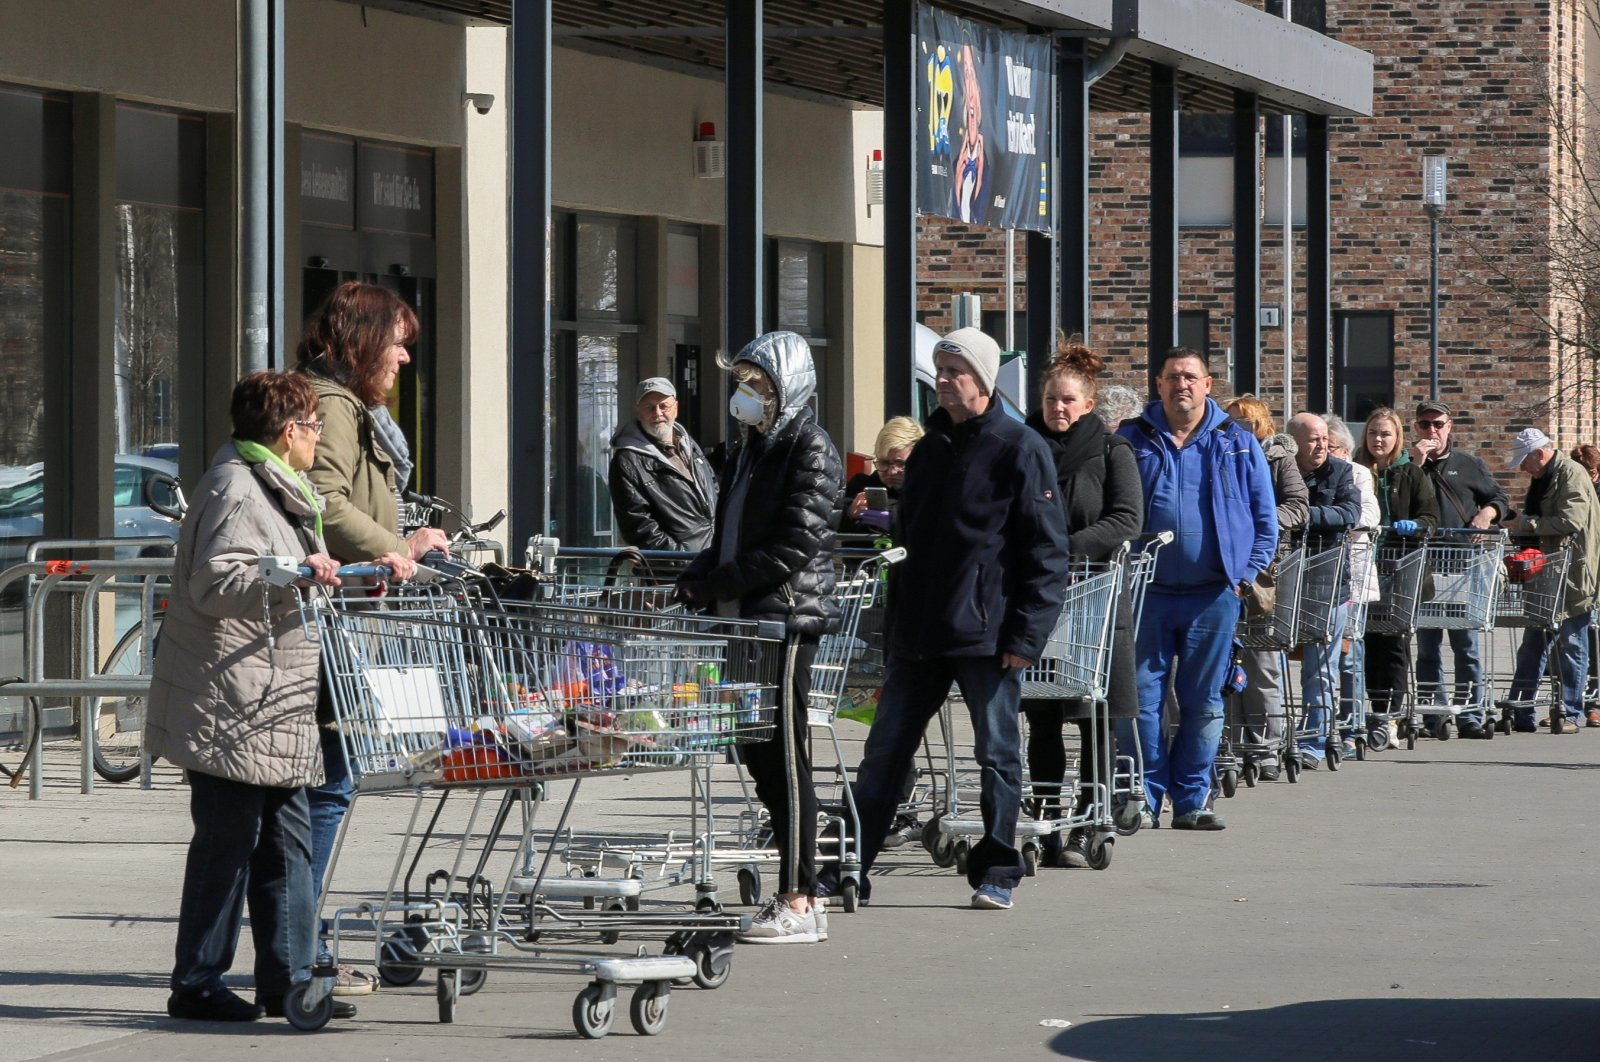 Shoppers leave as others wait in a queue to enter a supermarket in Schulzendorf near Berlin, during the coronavirus outbreak, Germany, March 25, 2020. (Reuters Photo)